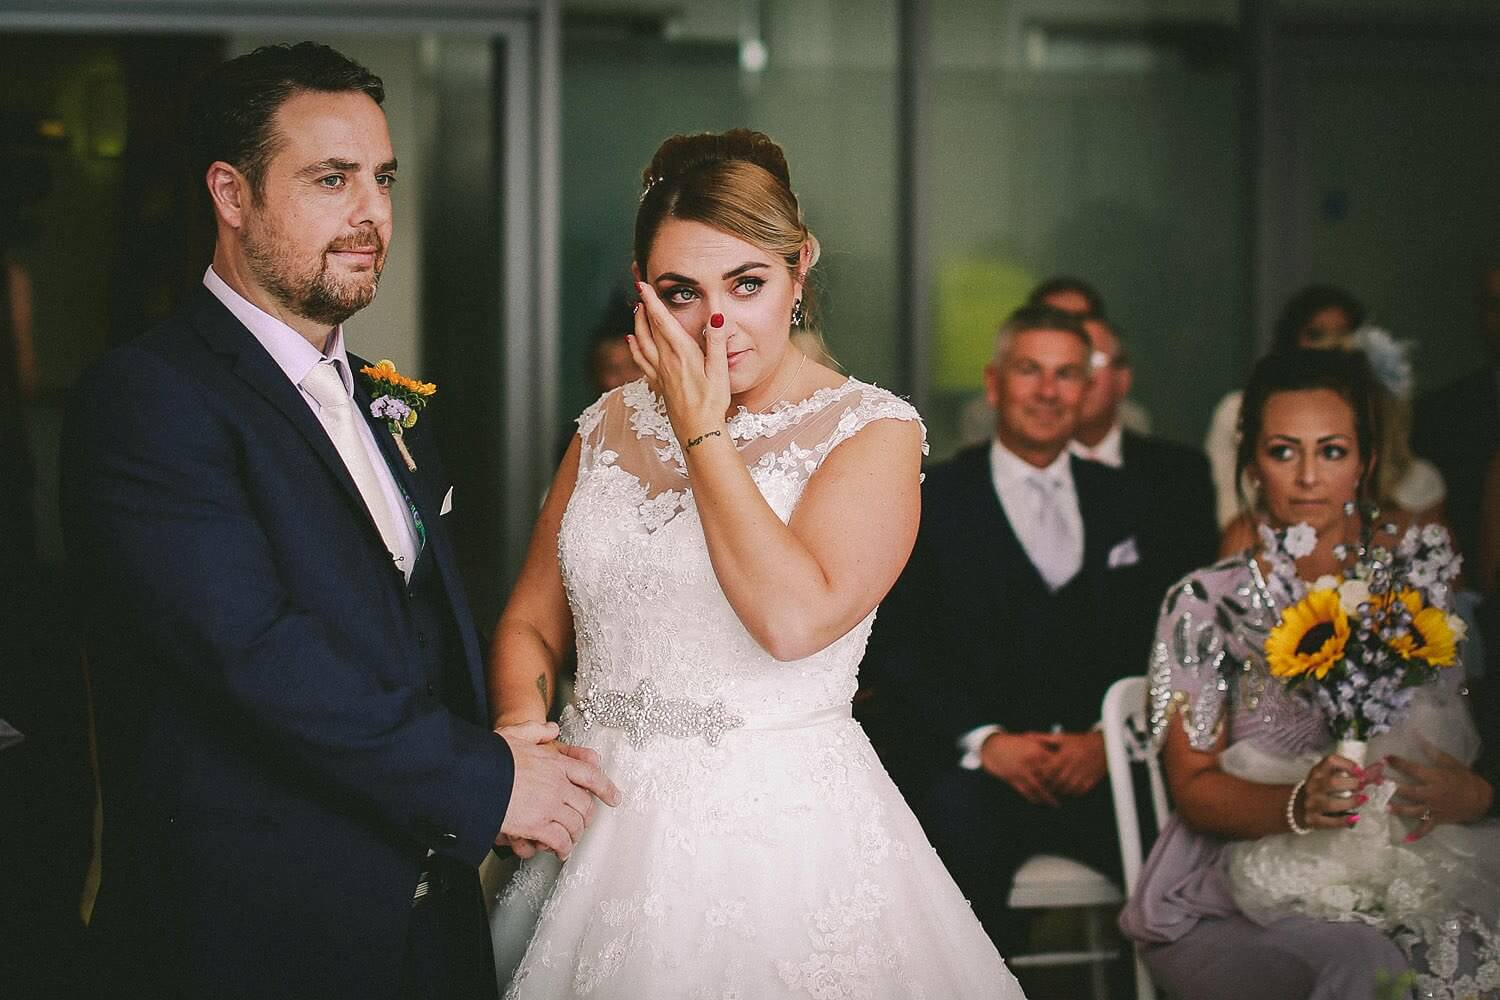 Bride crying during wedding ceremony Royal Liver Building wedding photography